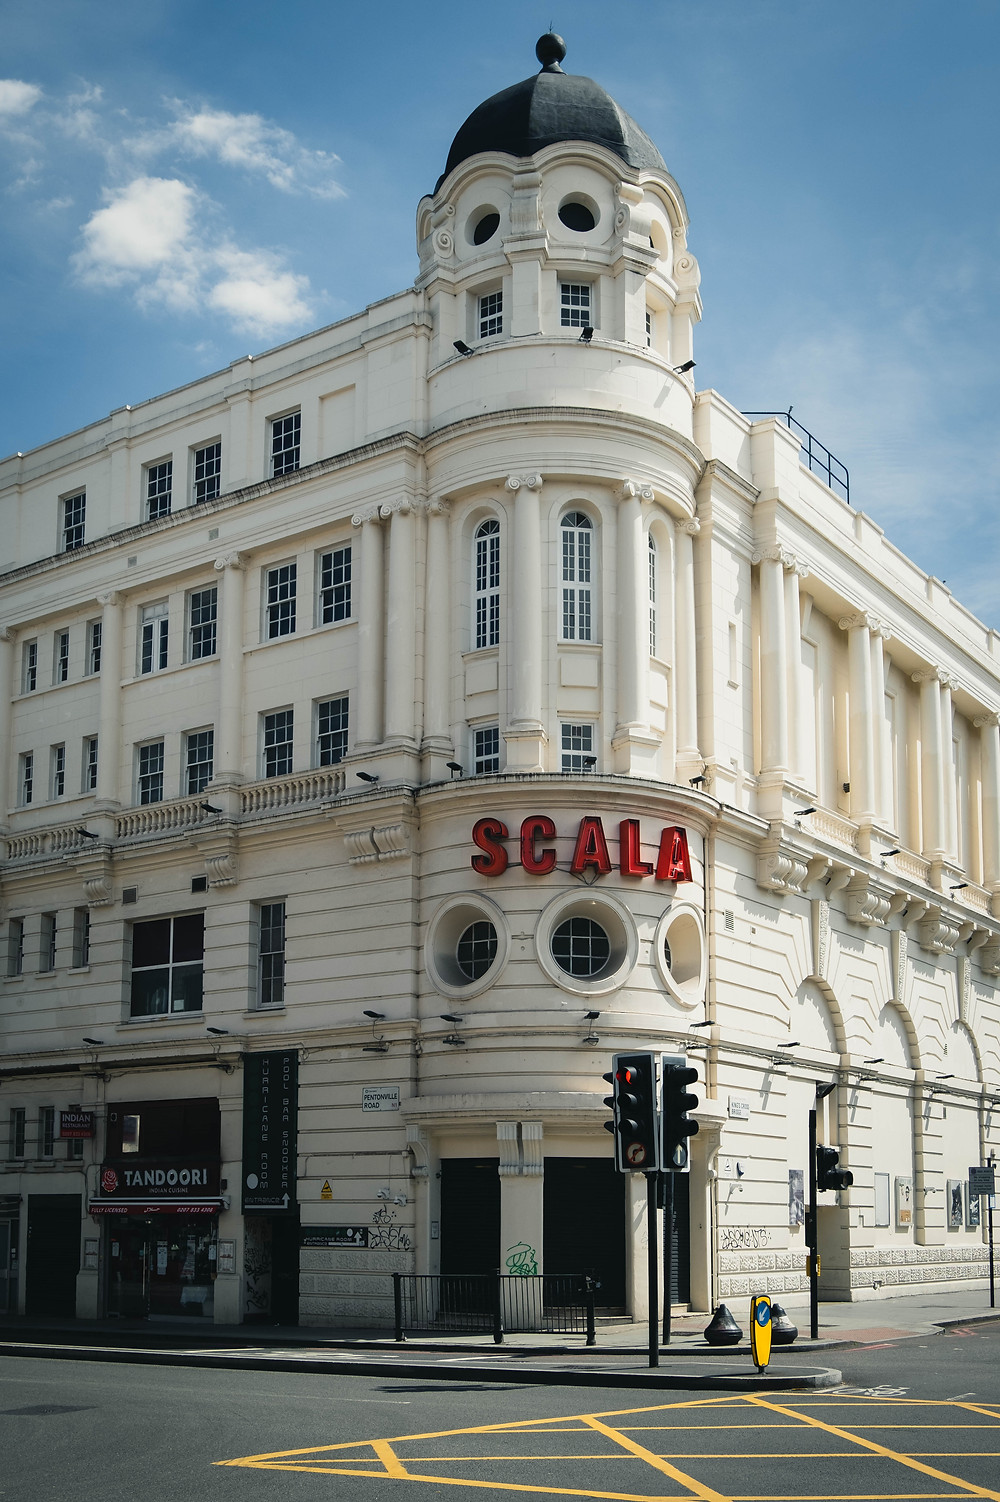 Photograph of The Scala music venue from the outside